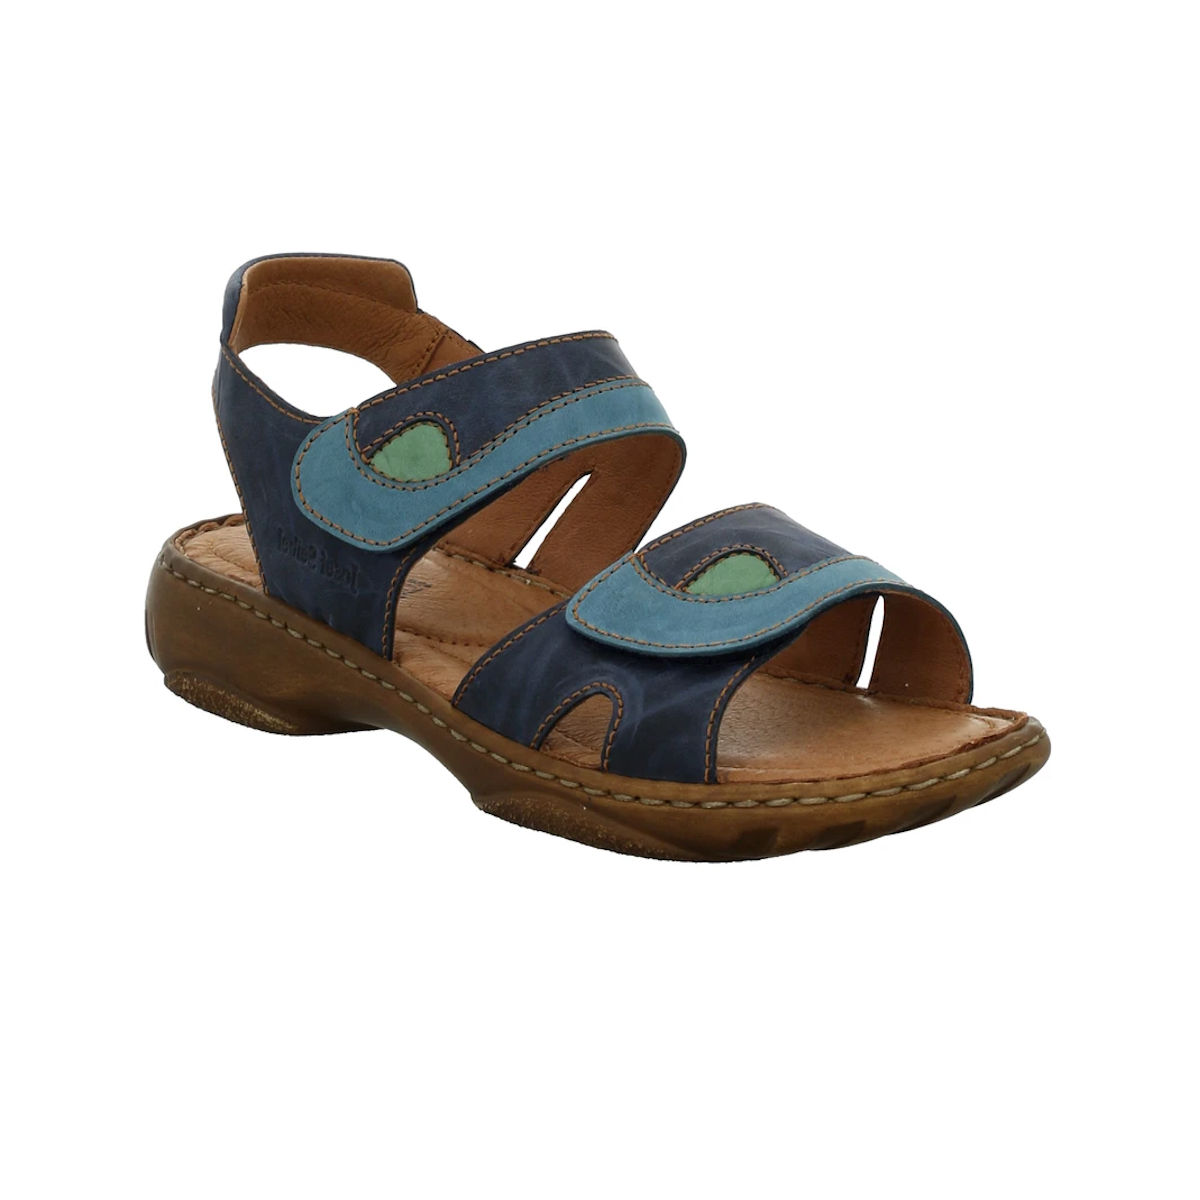 Josef Seibel Debra Blue Combi Sandal for wome